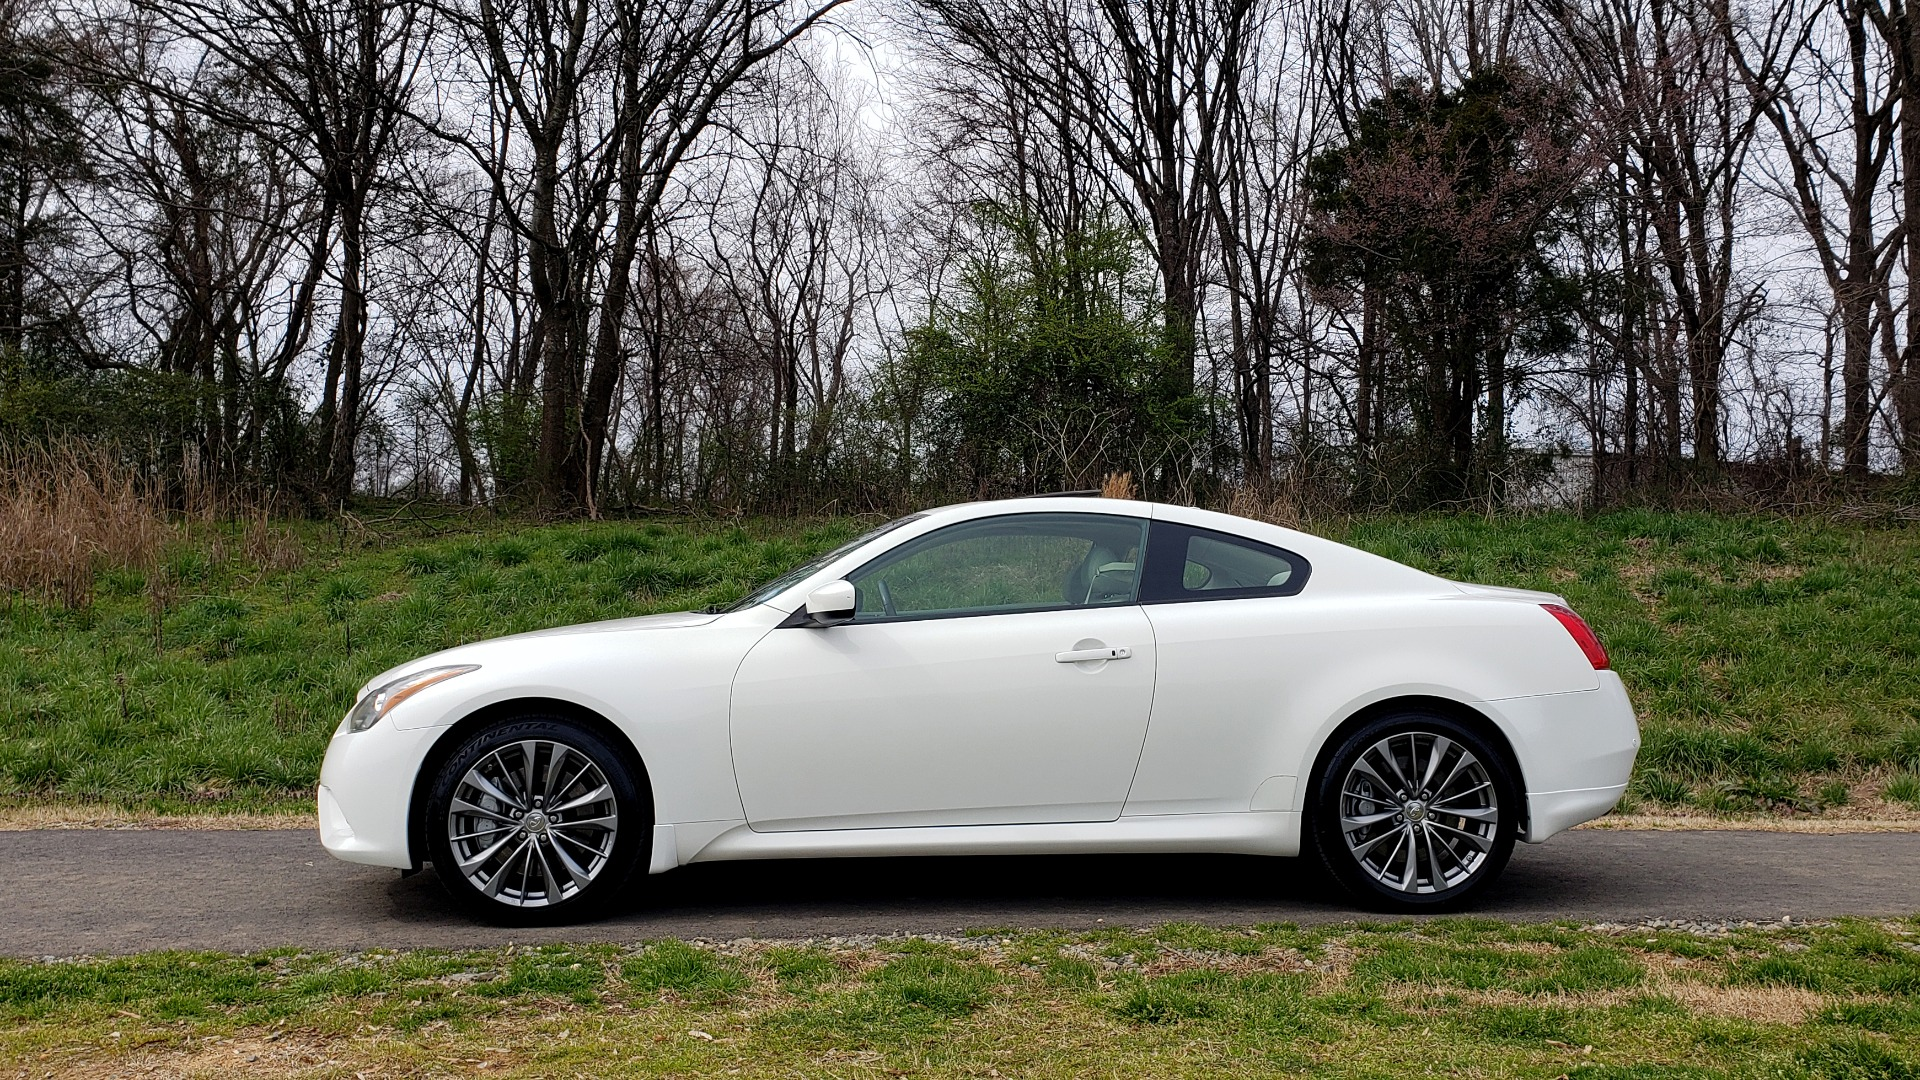 Used 2012 Infiniti G37 Coupe X AWD PREMIUM SPORT PKG / NAV / SUNROOF / REARVIEW for sale Sold at Formula Imports in Charlotte NC 28227 2